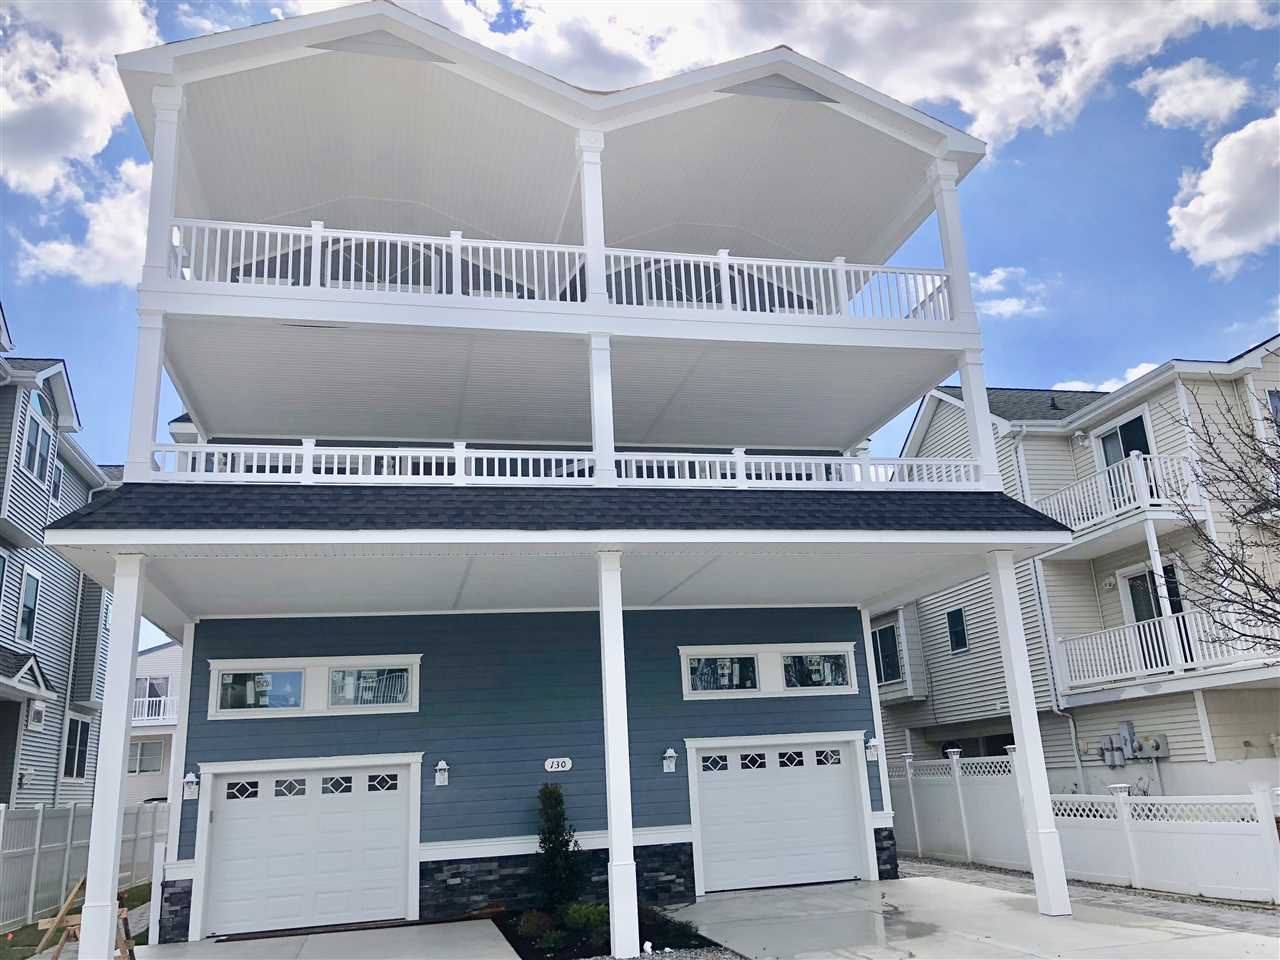 130 59th St. - West, Sea Isle City, NJ 08243